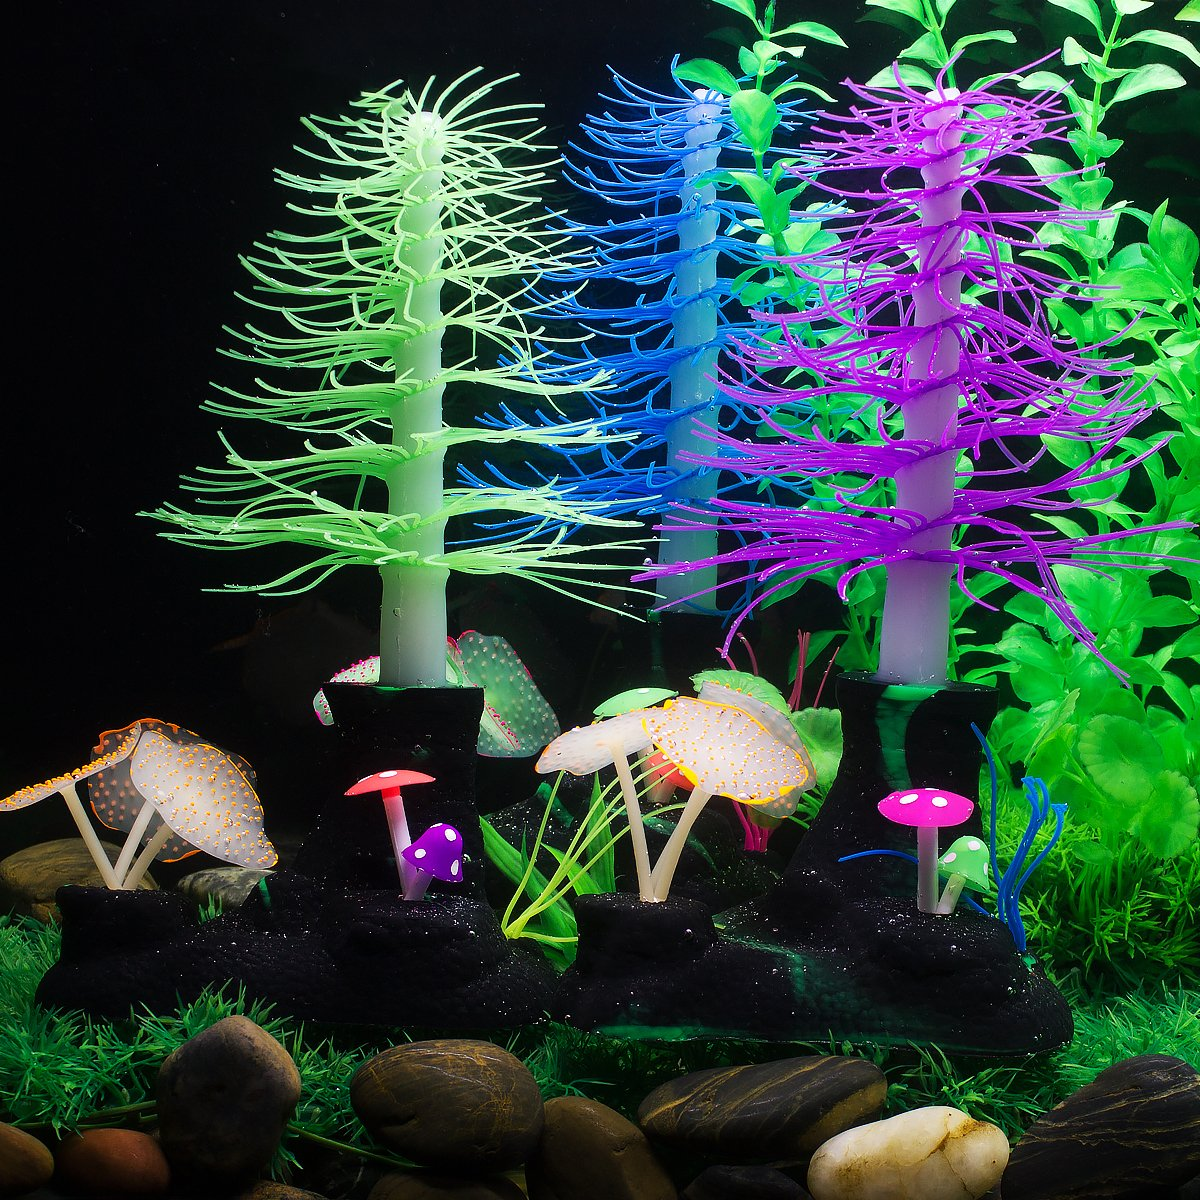 saim aquarium artificial decorative christmas tree with mushroom coral plants ornament decor for fish tank decorations